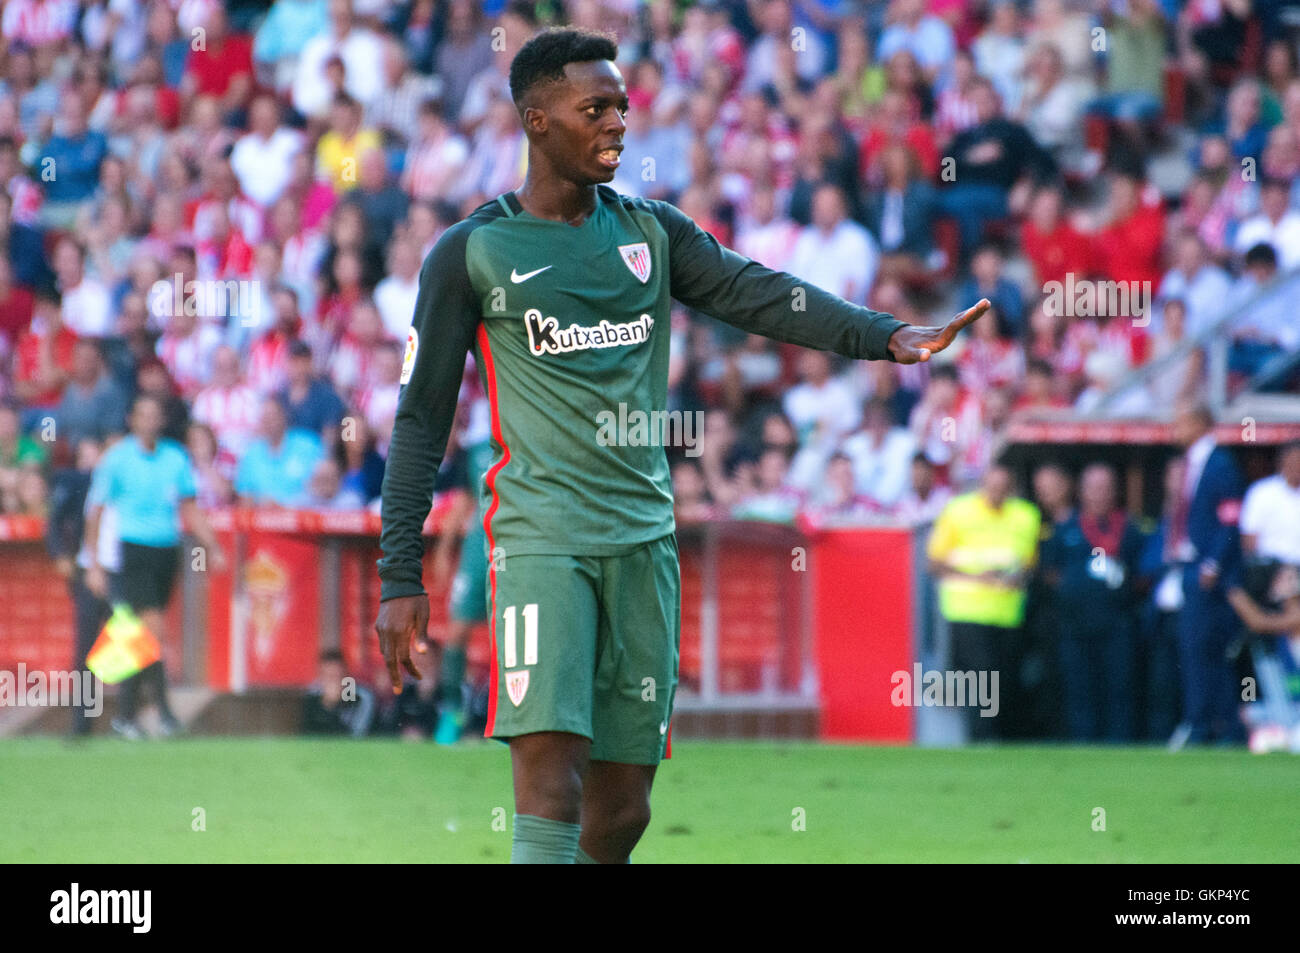 Gijon, Spain. 21st August, 2016. Iñaki Williams (Forward, Athletic Club) while Sporting de Gijon supporters - Stock Image